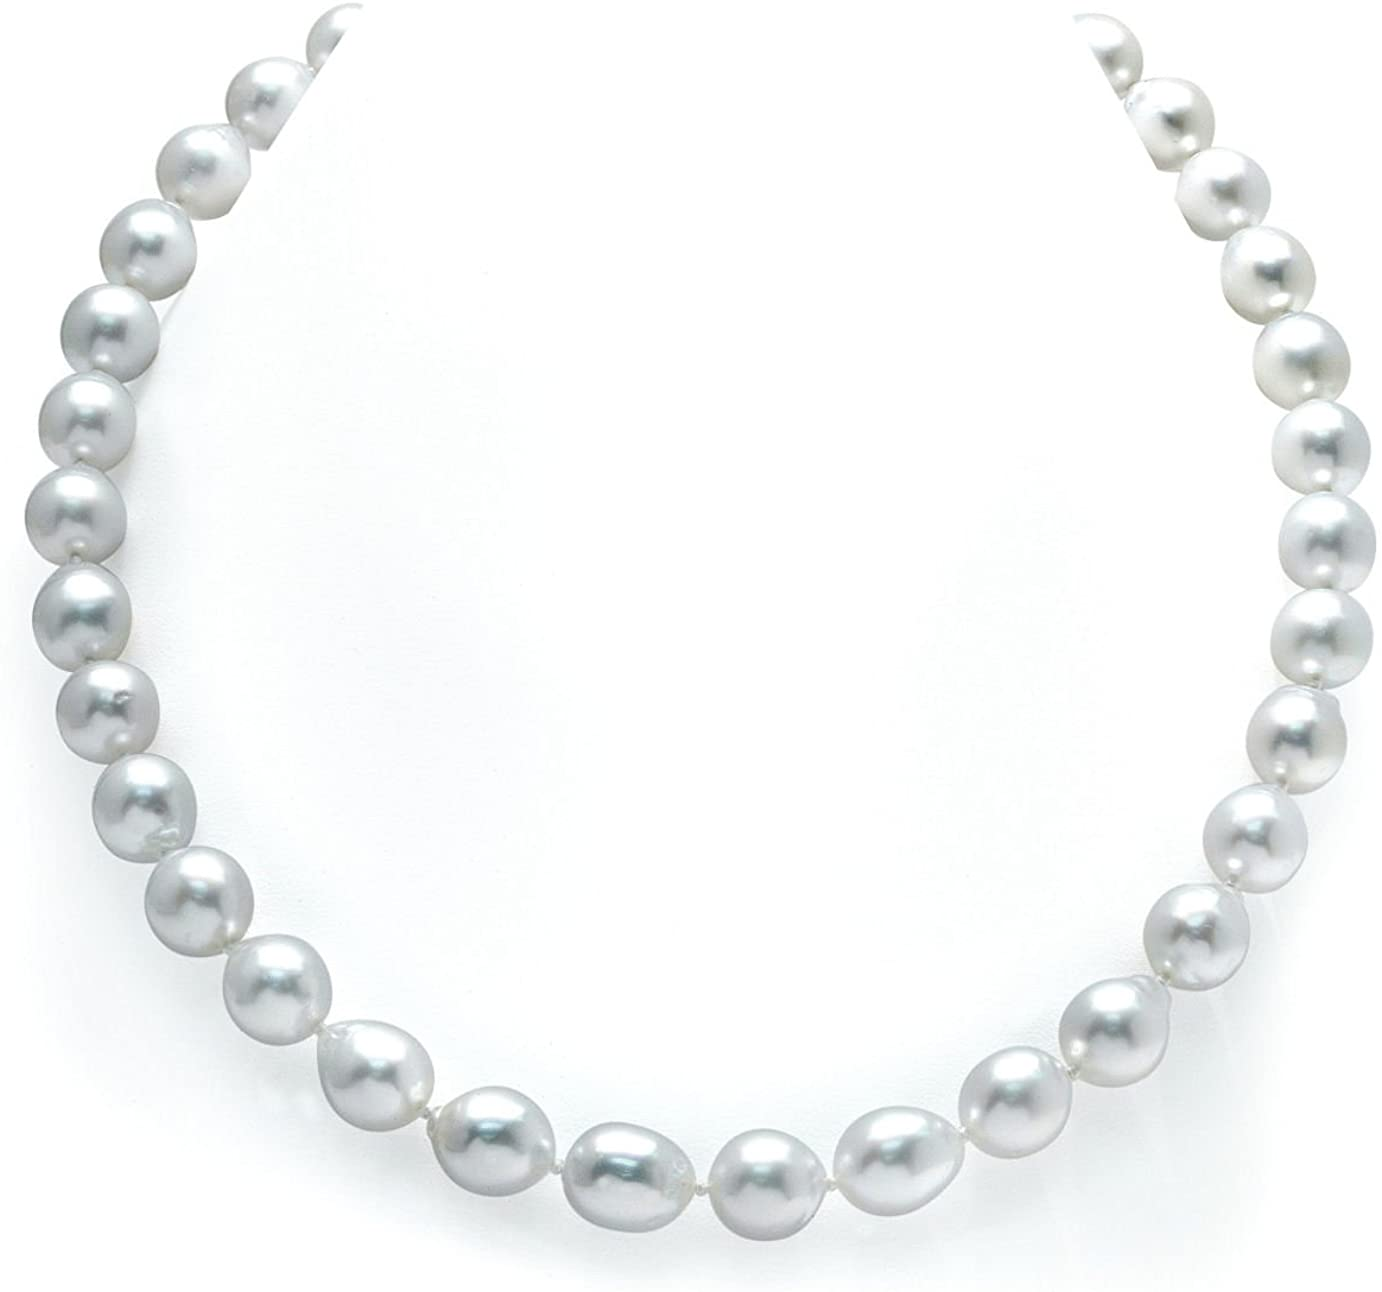 THE PEARL SOURCE 14K Gold 10-11mm Drop-Shape Genuine White South Sea Cultured Pearl Necklace in 17